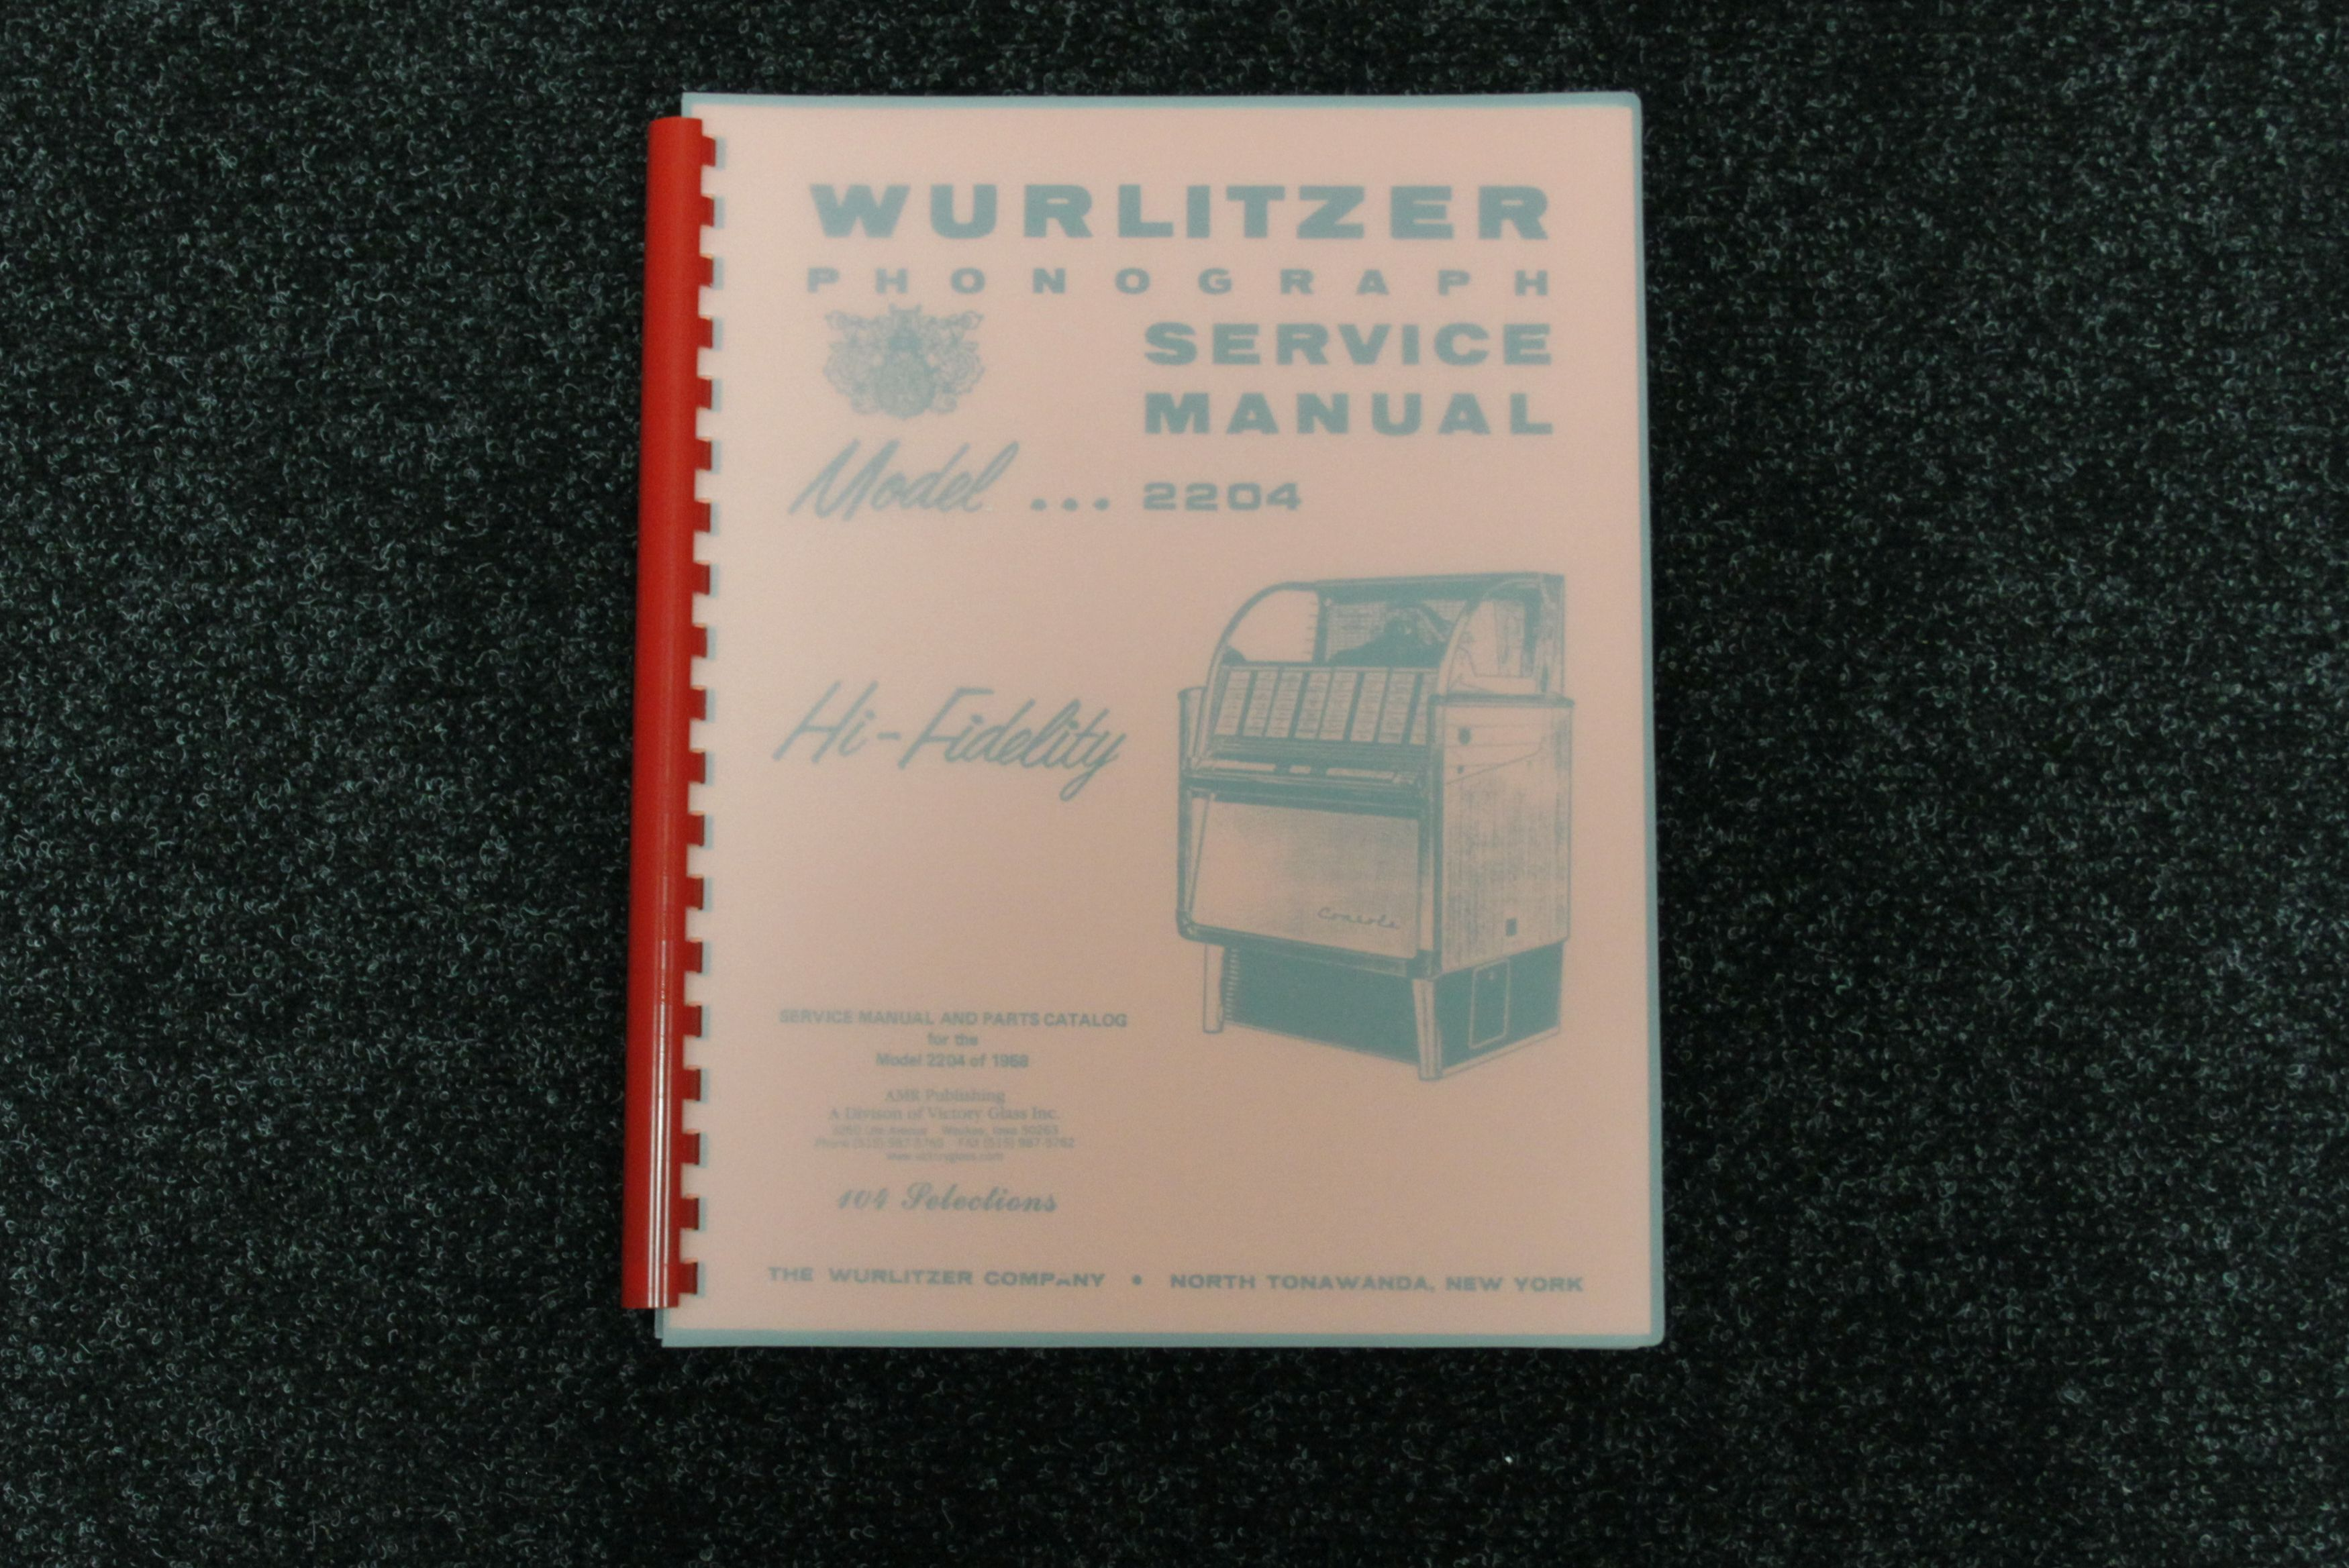 Wurlitzer Service Manual 2204